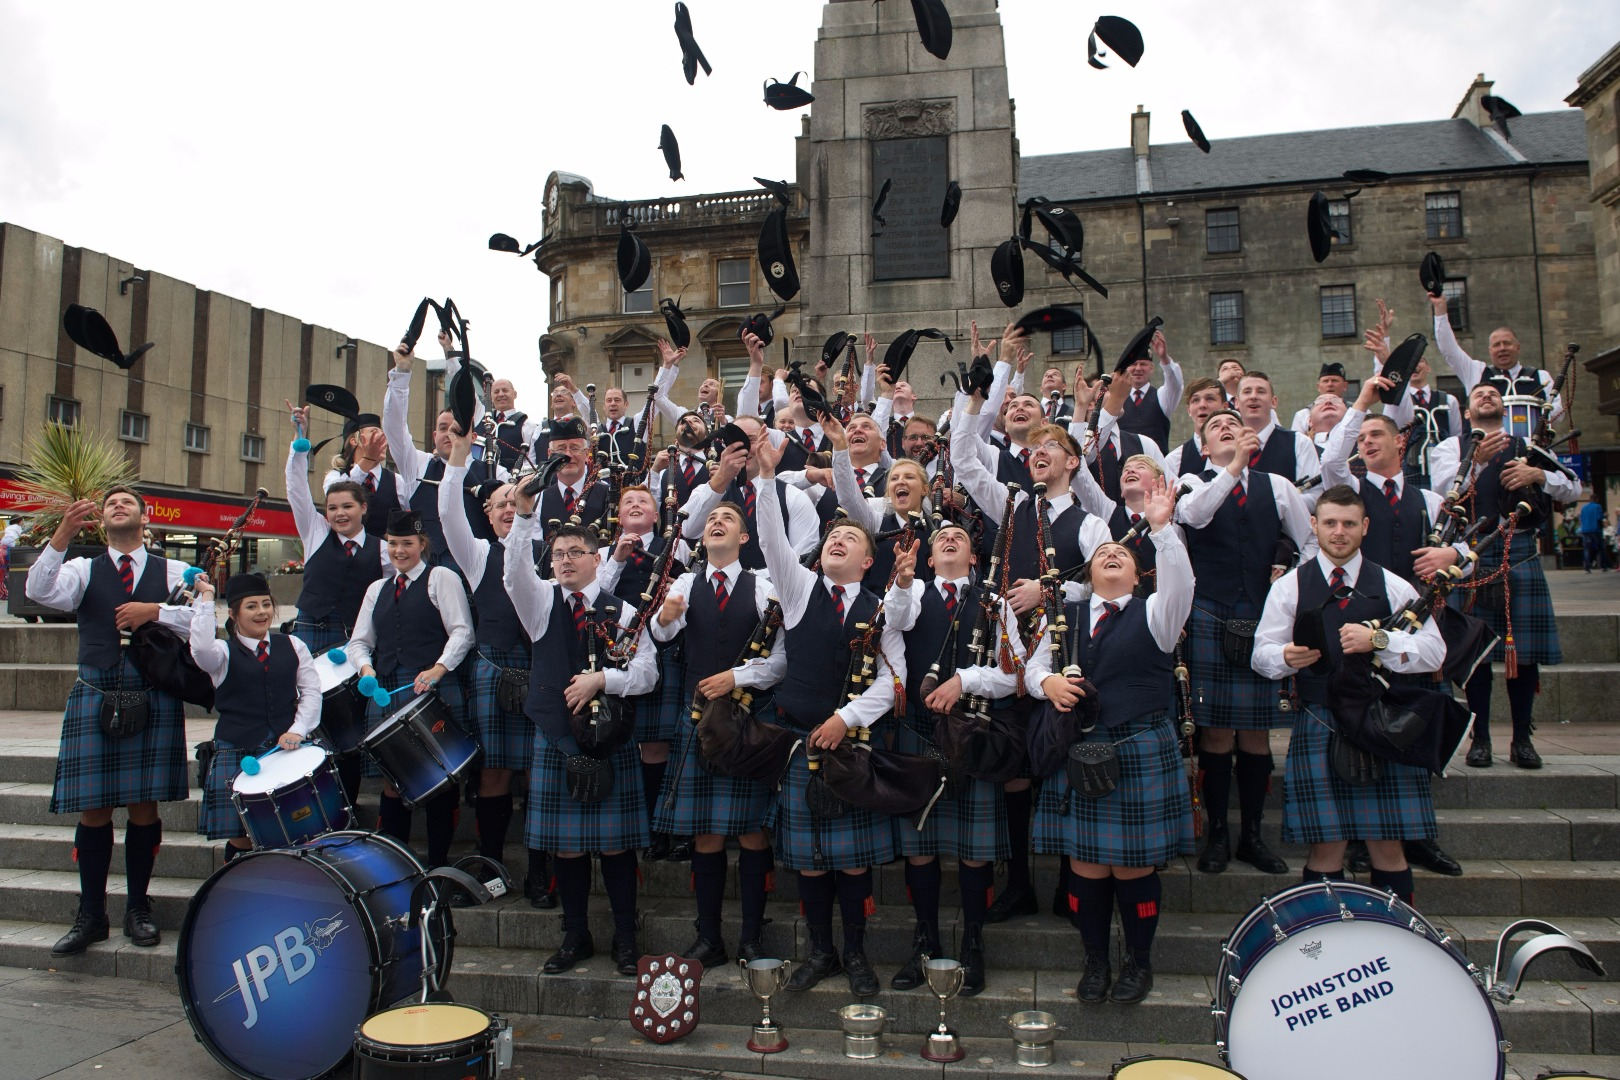 Piping hot talent is heading for Paisley